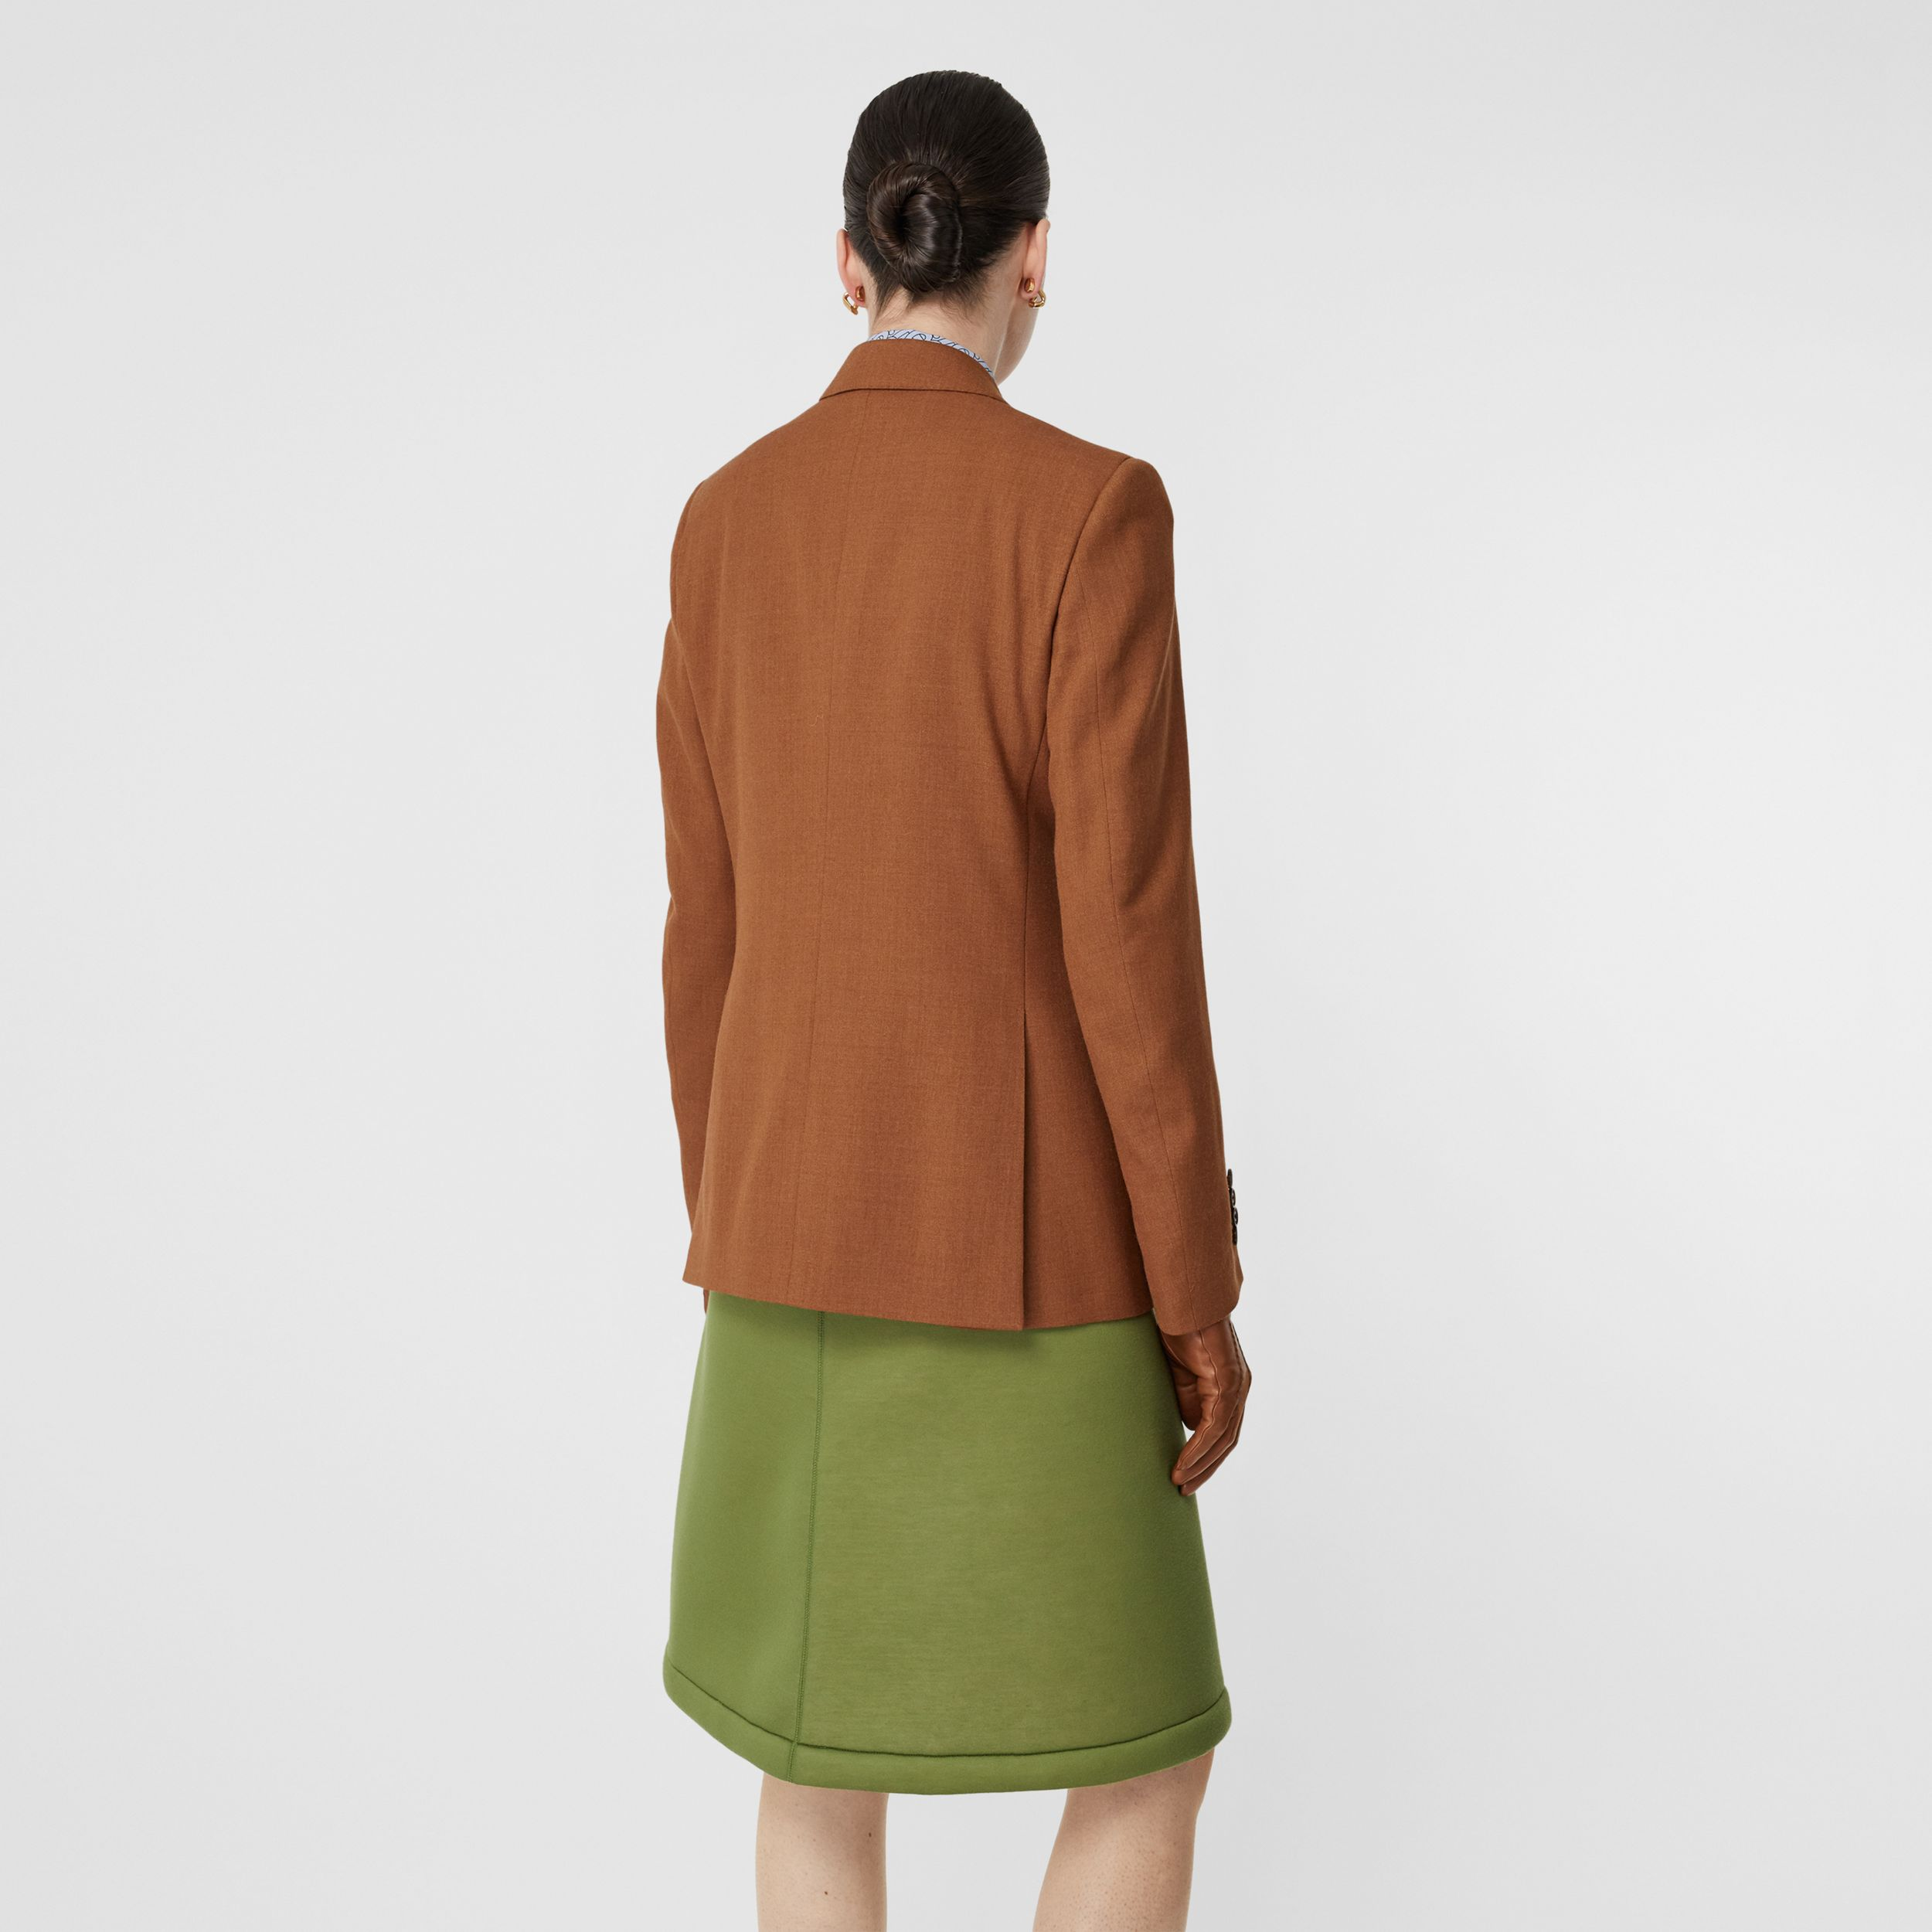 Wool, Silk and Cotton Blazer in Rust - Women | Burberry - 3